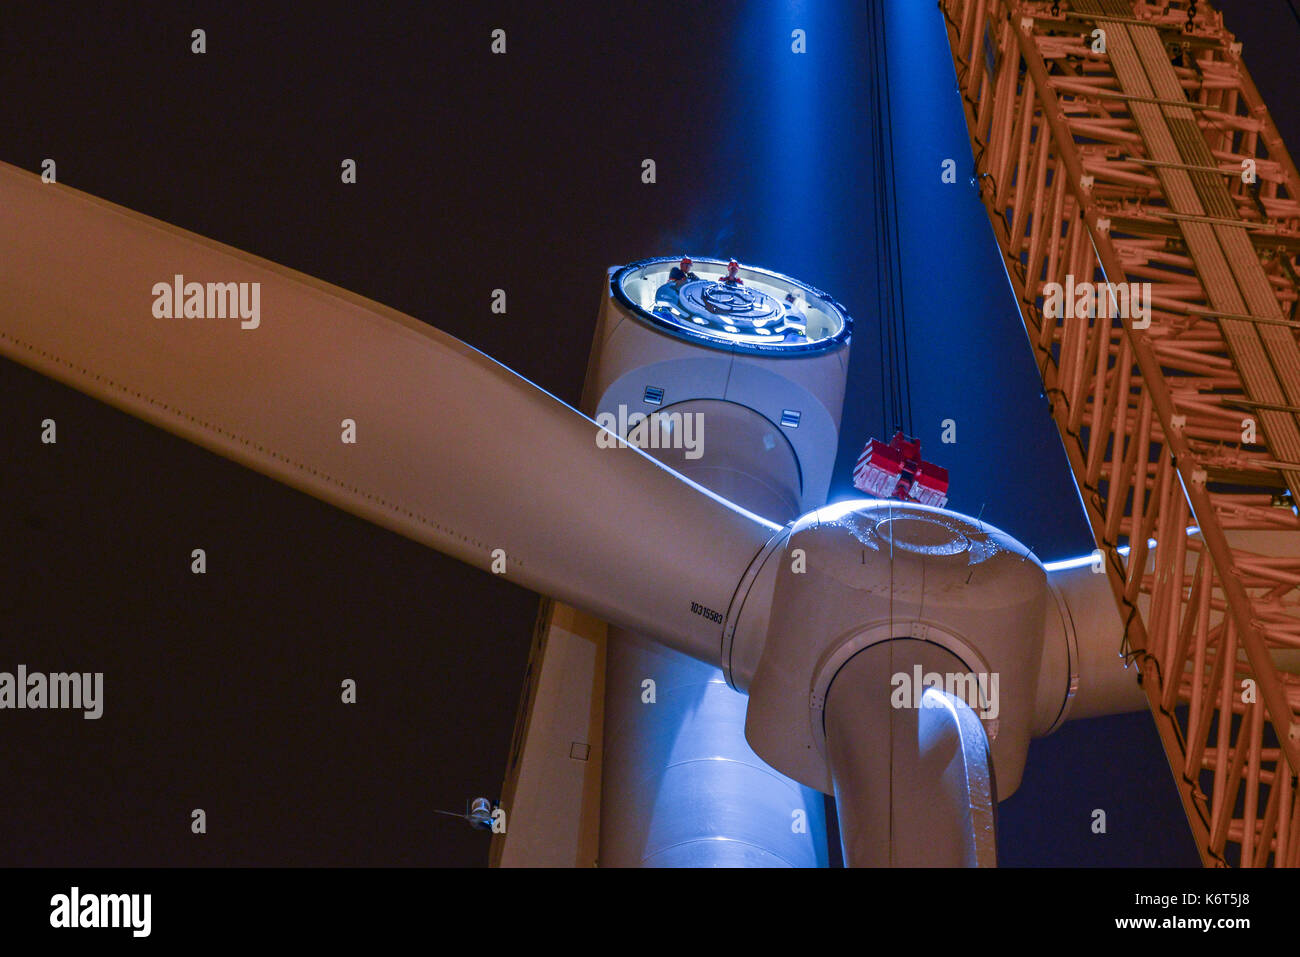 GERMANY Hamburg, construction of new Nordex wind turbine at water treatment plant of Hamburg Wasser art night , montage of rotor star with blades with crane - Stock Image